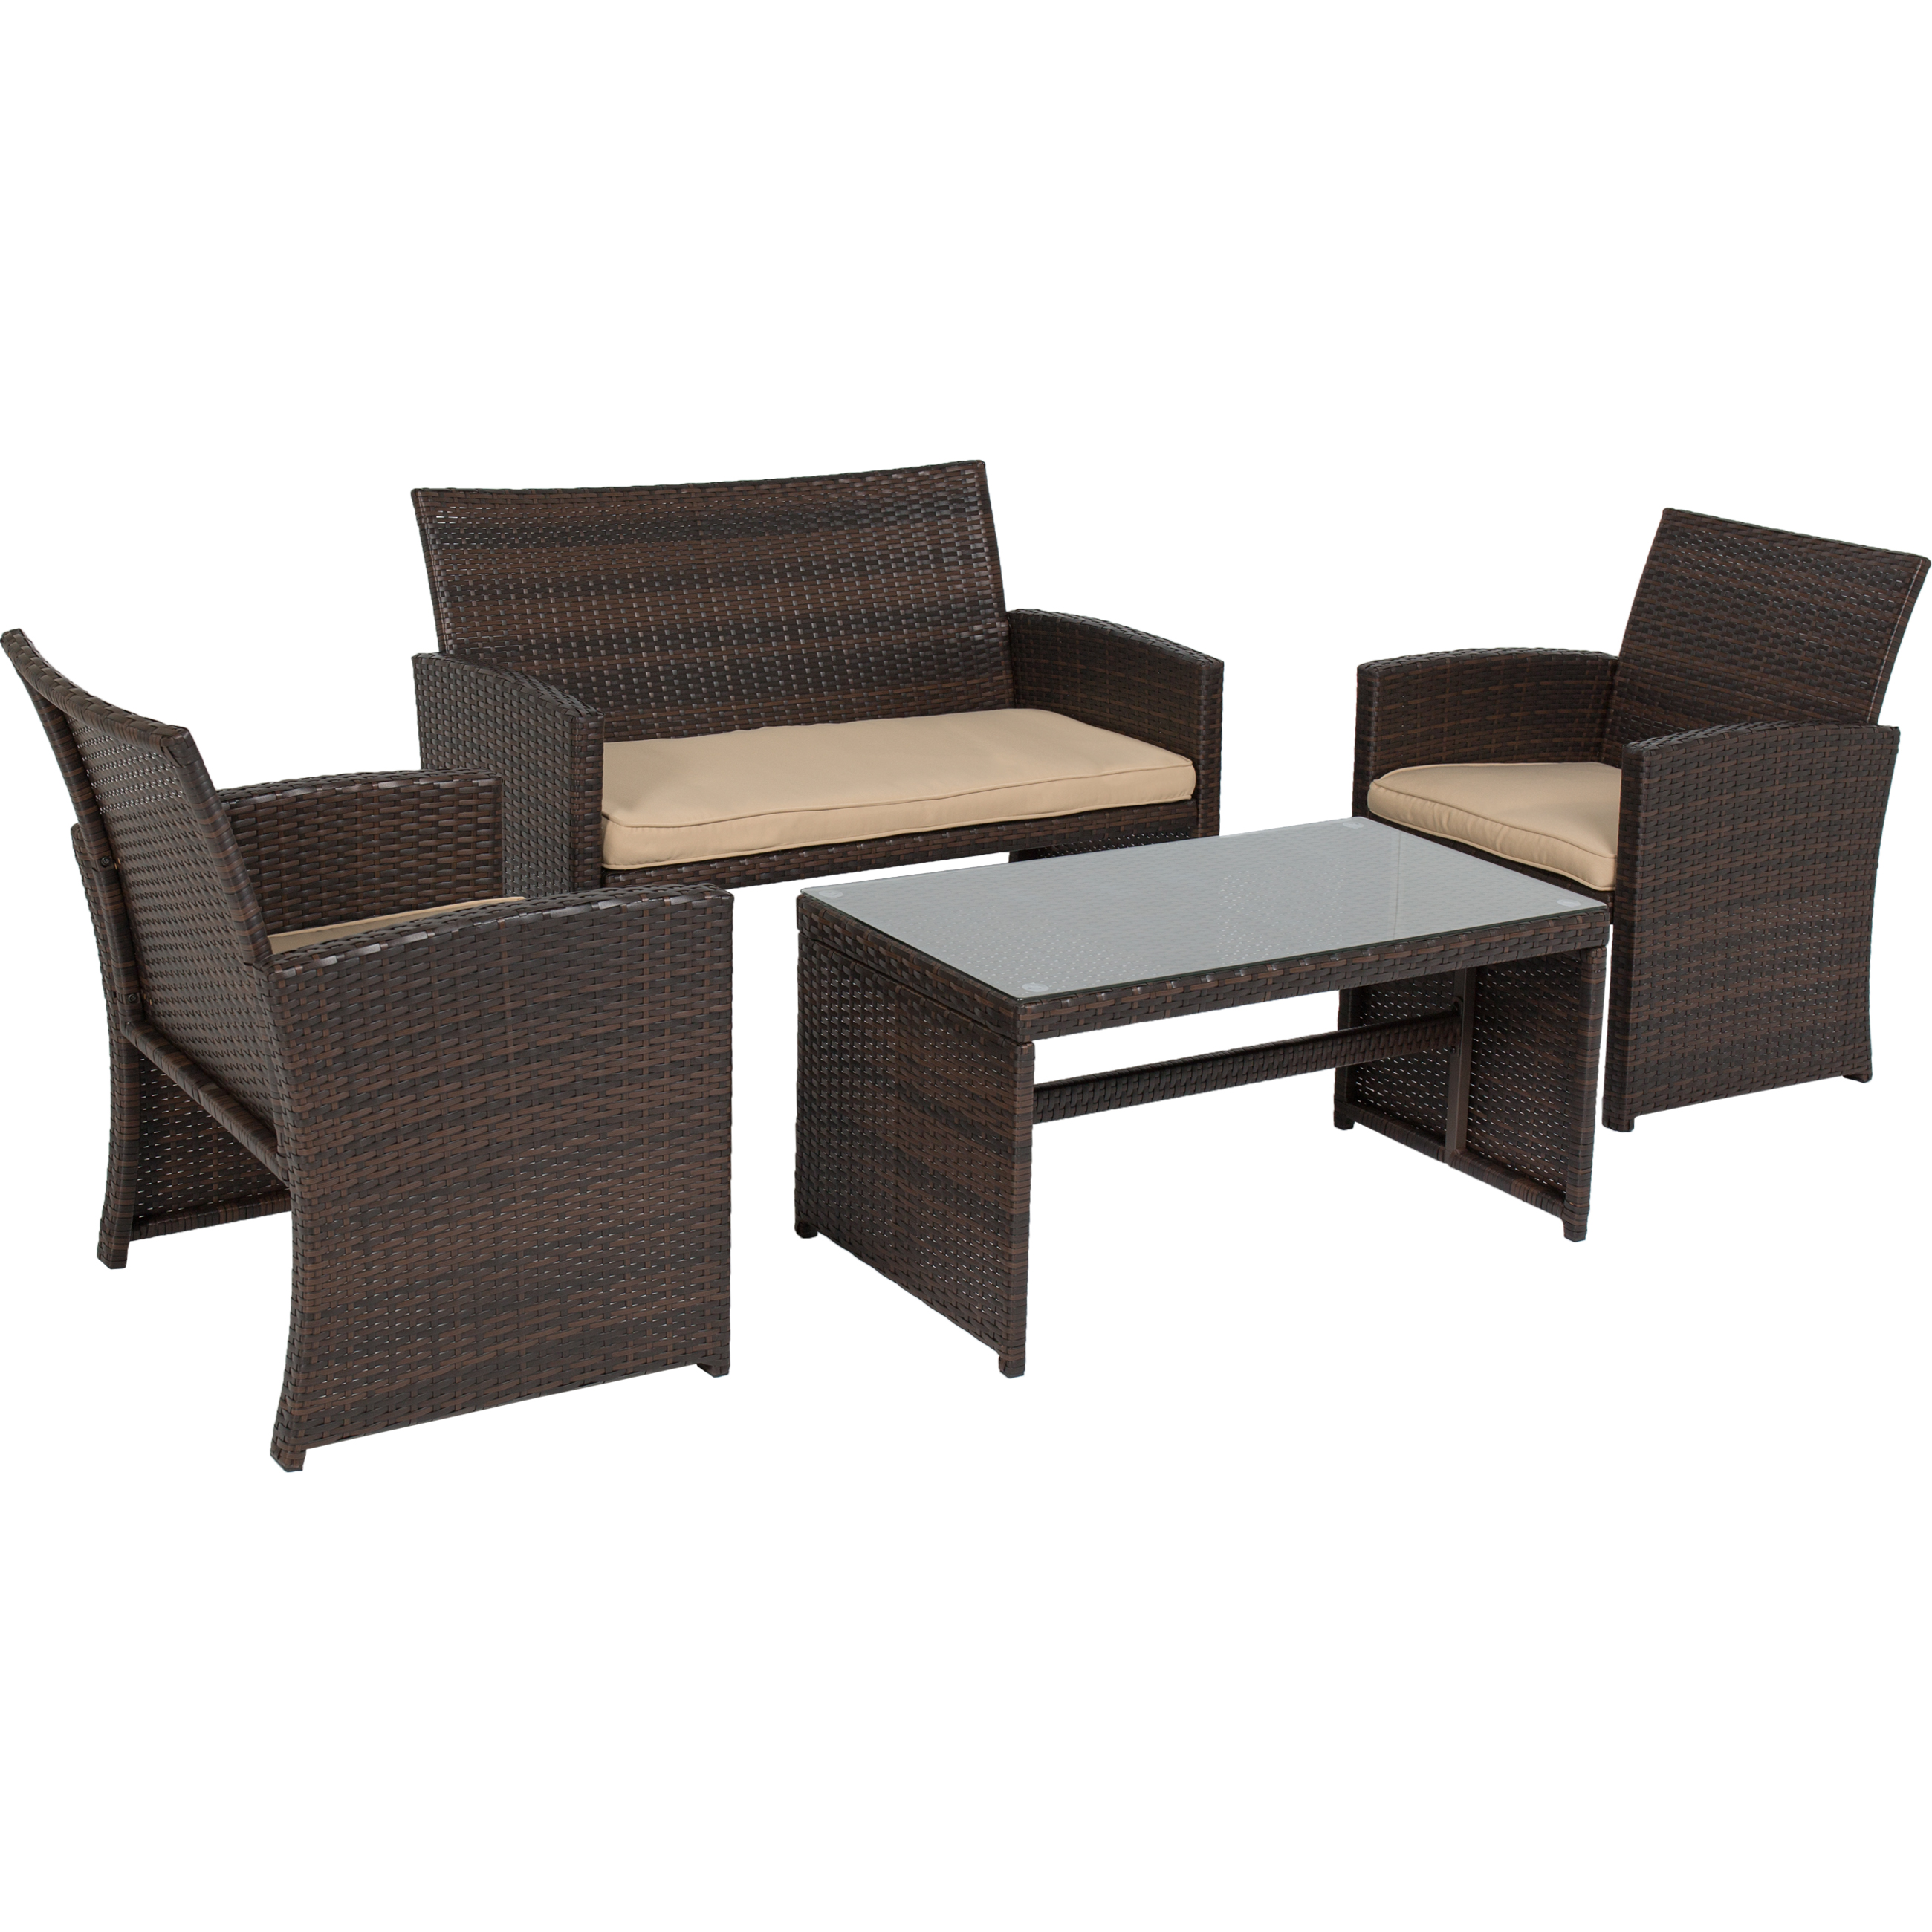 Best Choice Products 4pc Wicker Outdoor Patio Furniture Set Cushioned Seats    Walmart.com